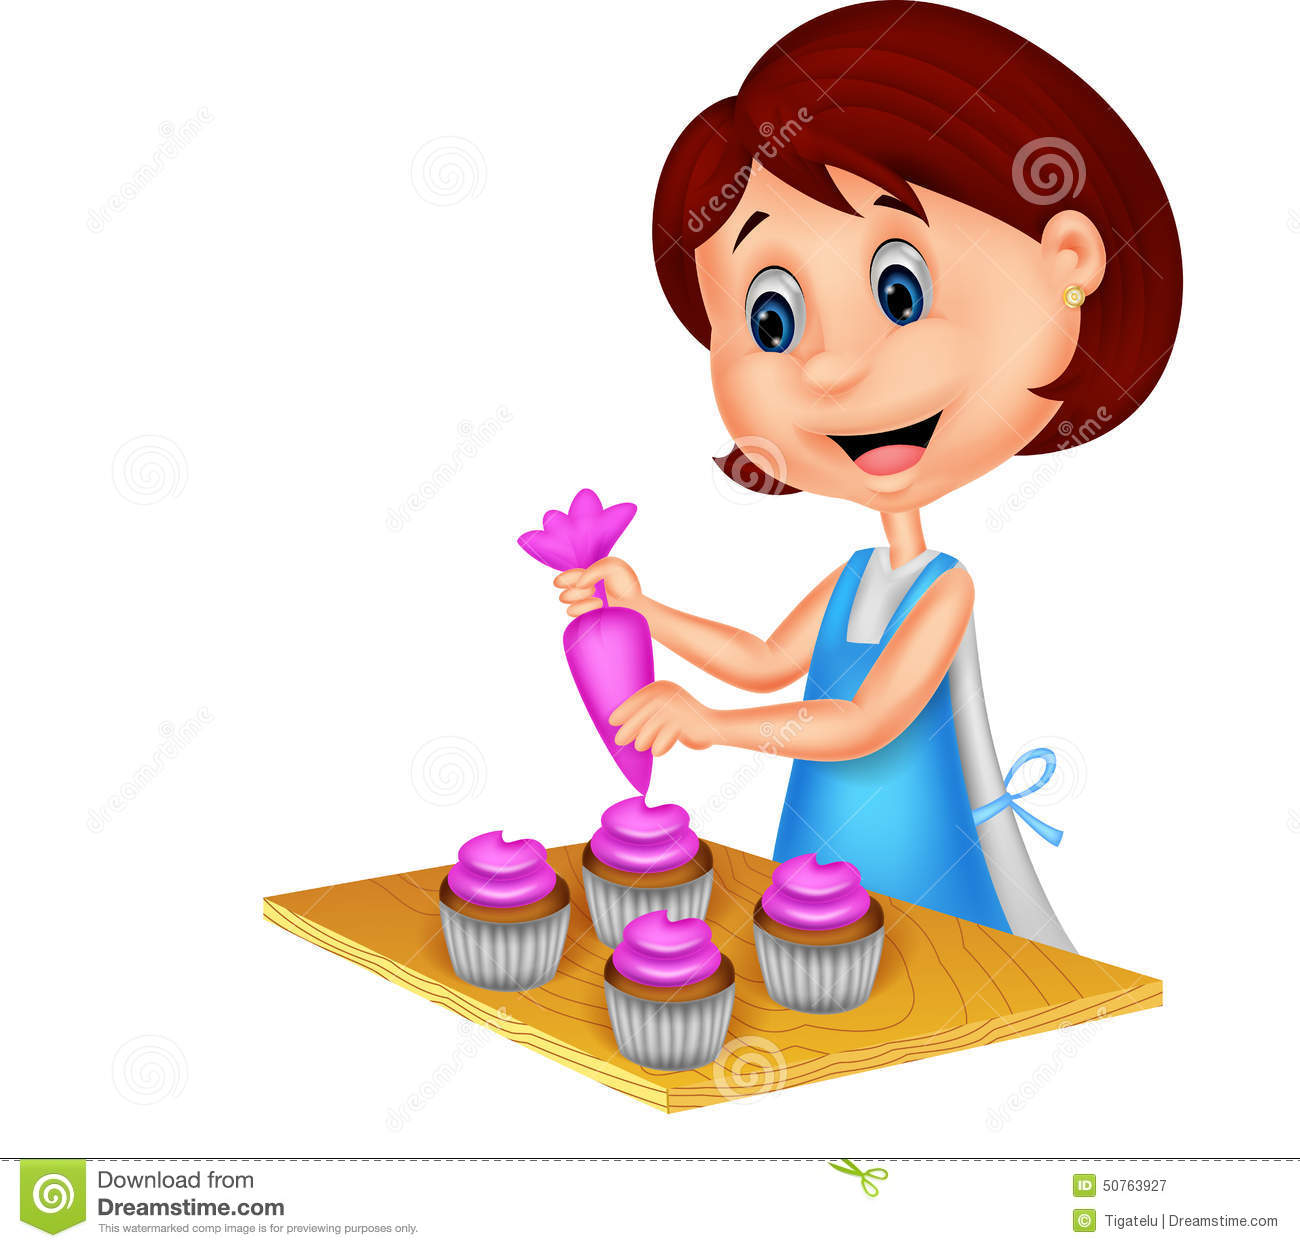 Royalty Free Vector. Download Cartoon Woman With Apron Decorating Cupcakes  ...